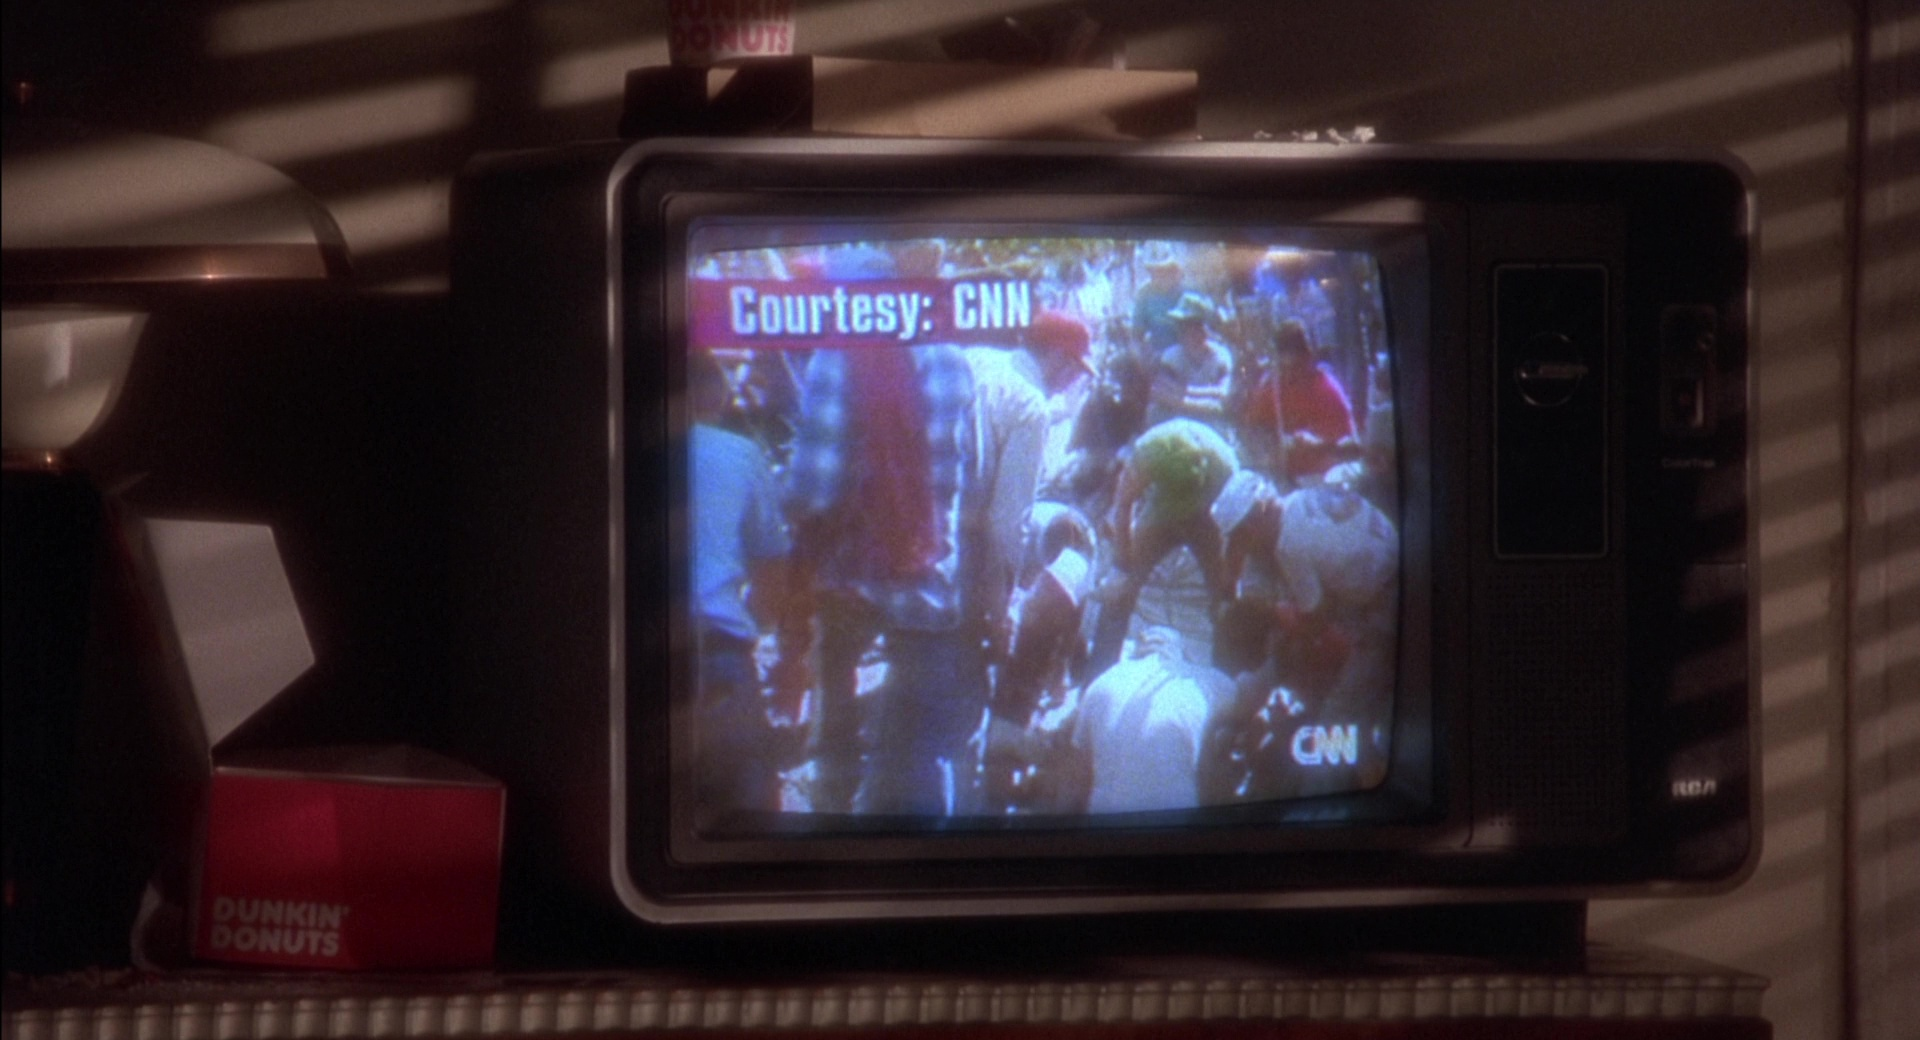 CNN, RCA TV and Dunkin' Donuts in Twelve Monkeys (1995) Movie